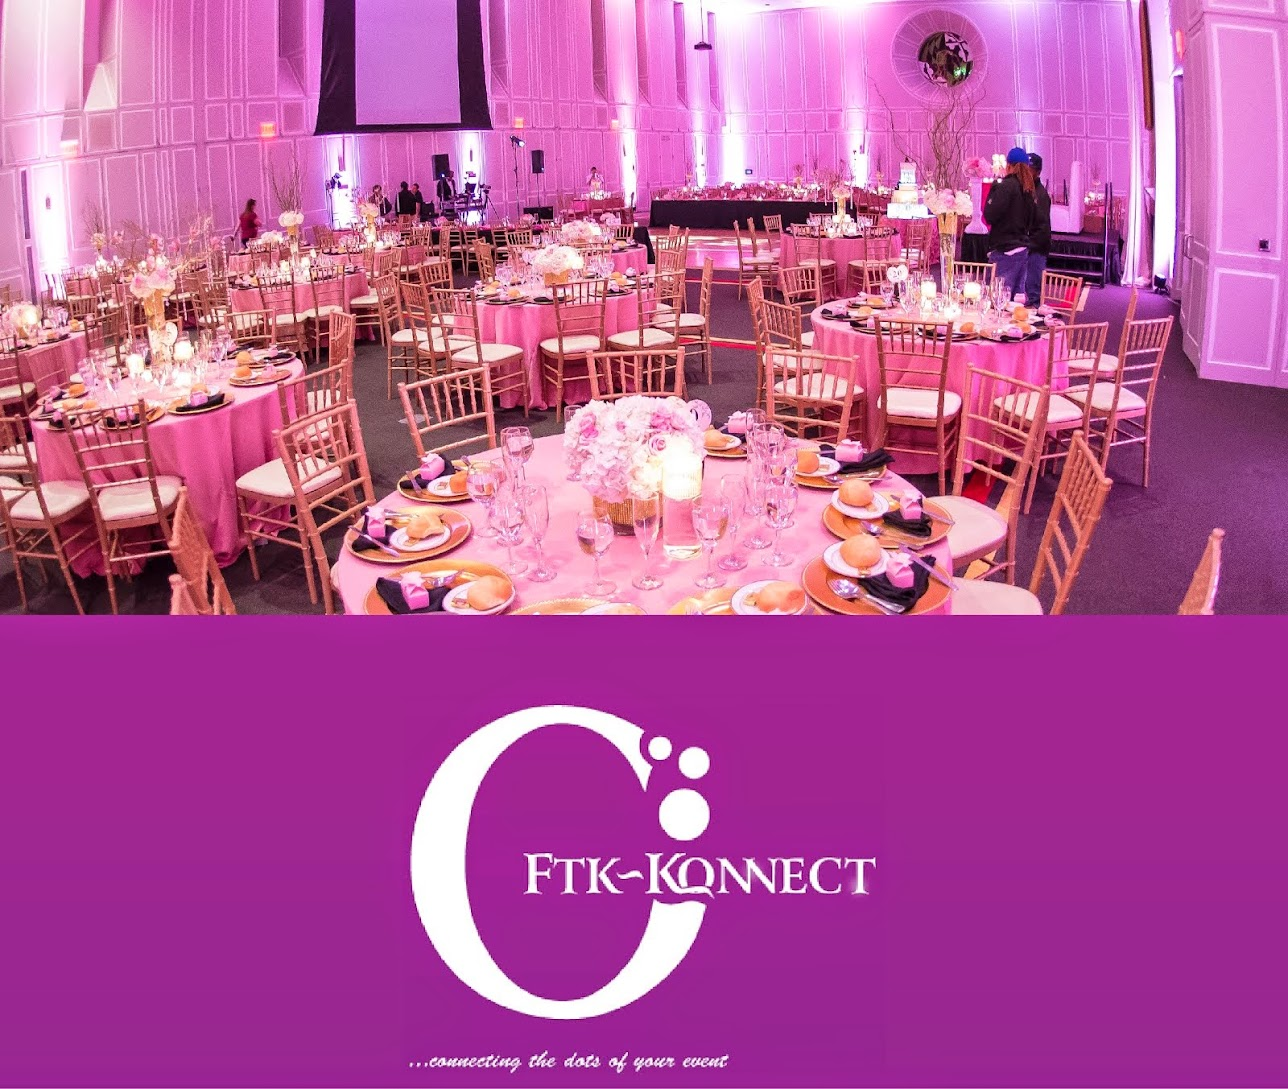 FTK~KONNECT EVENTS